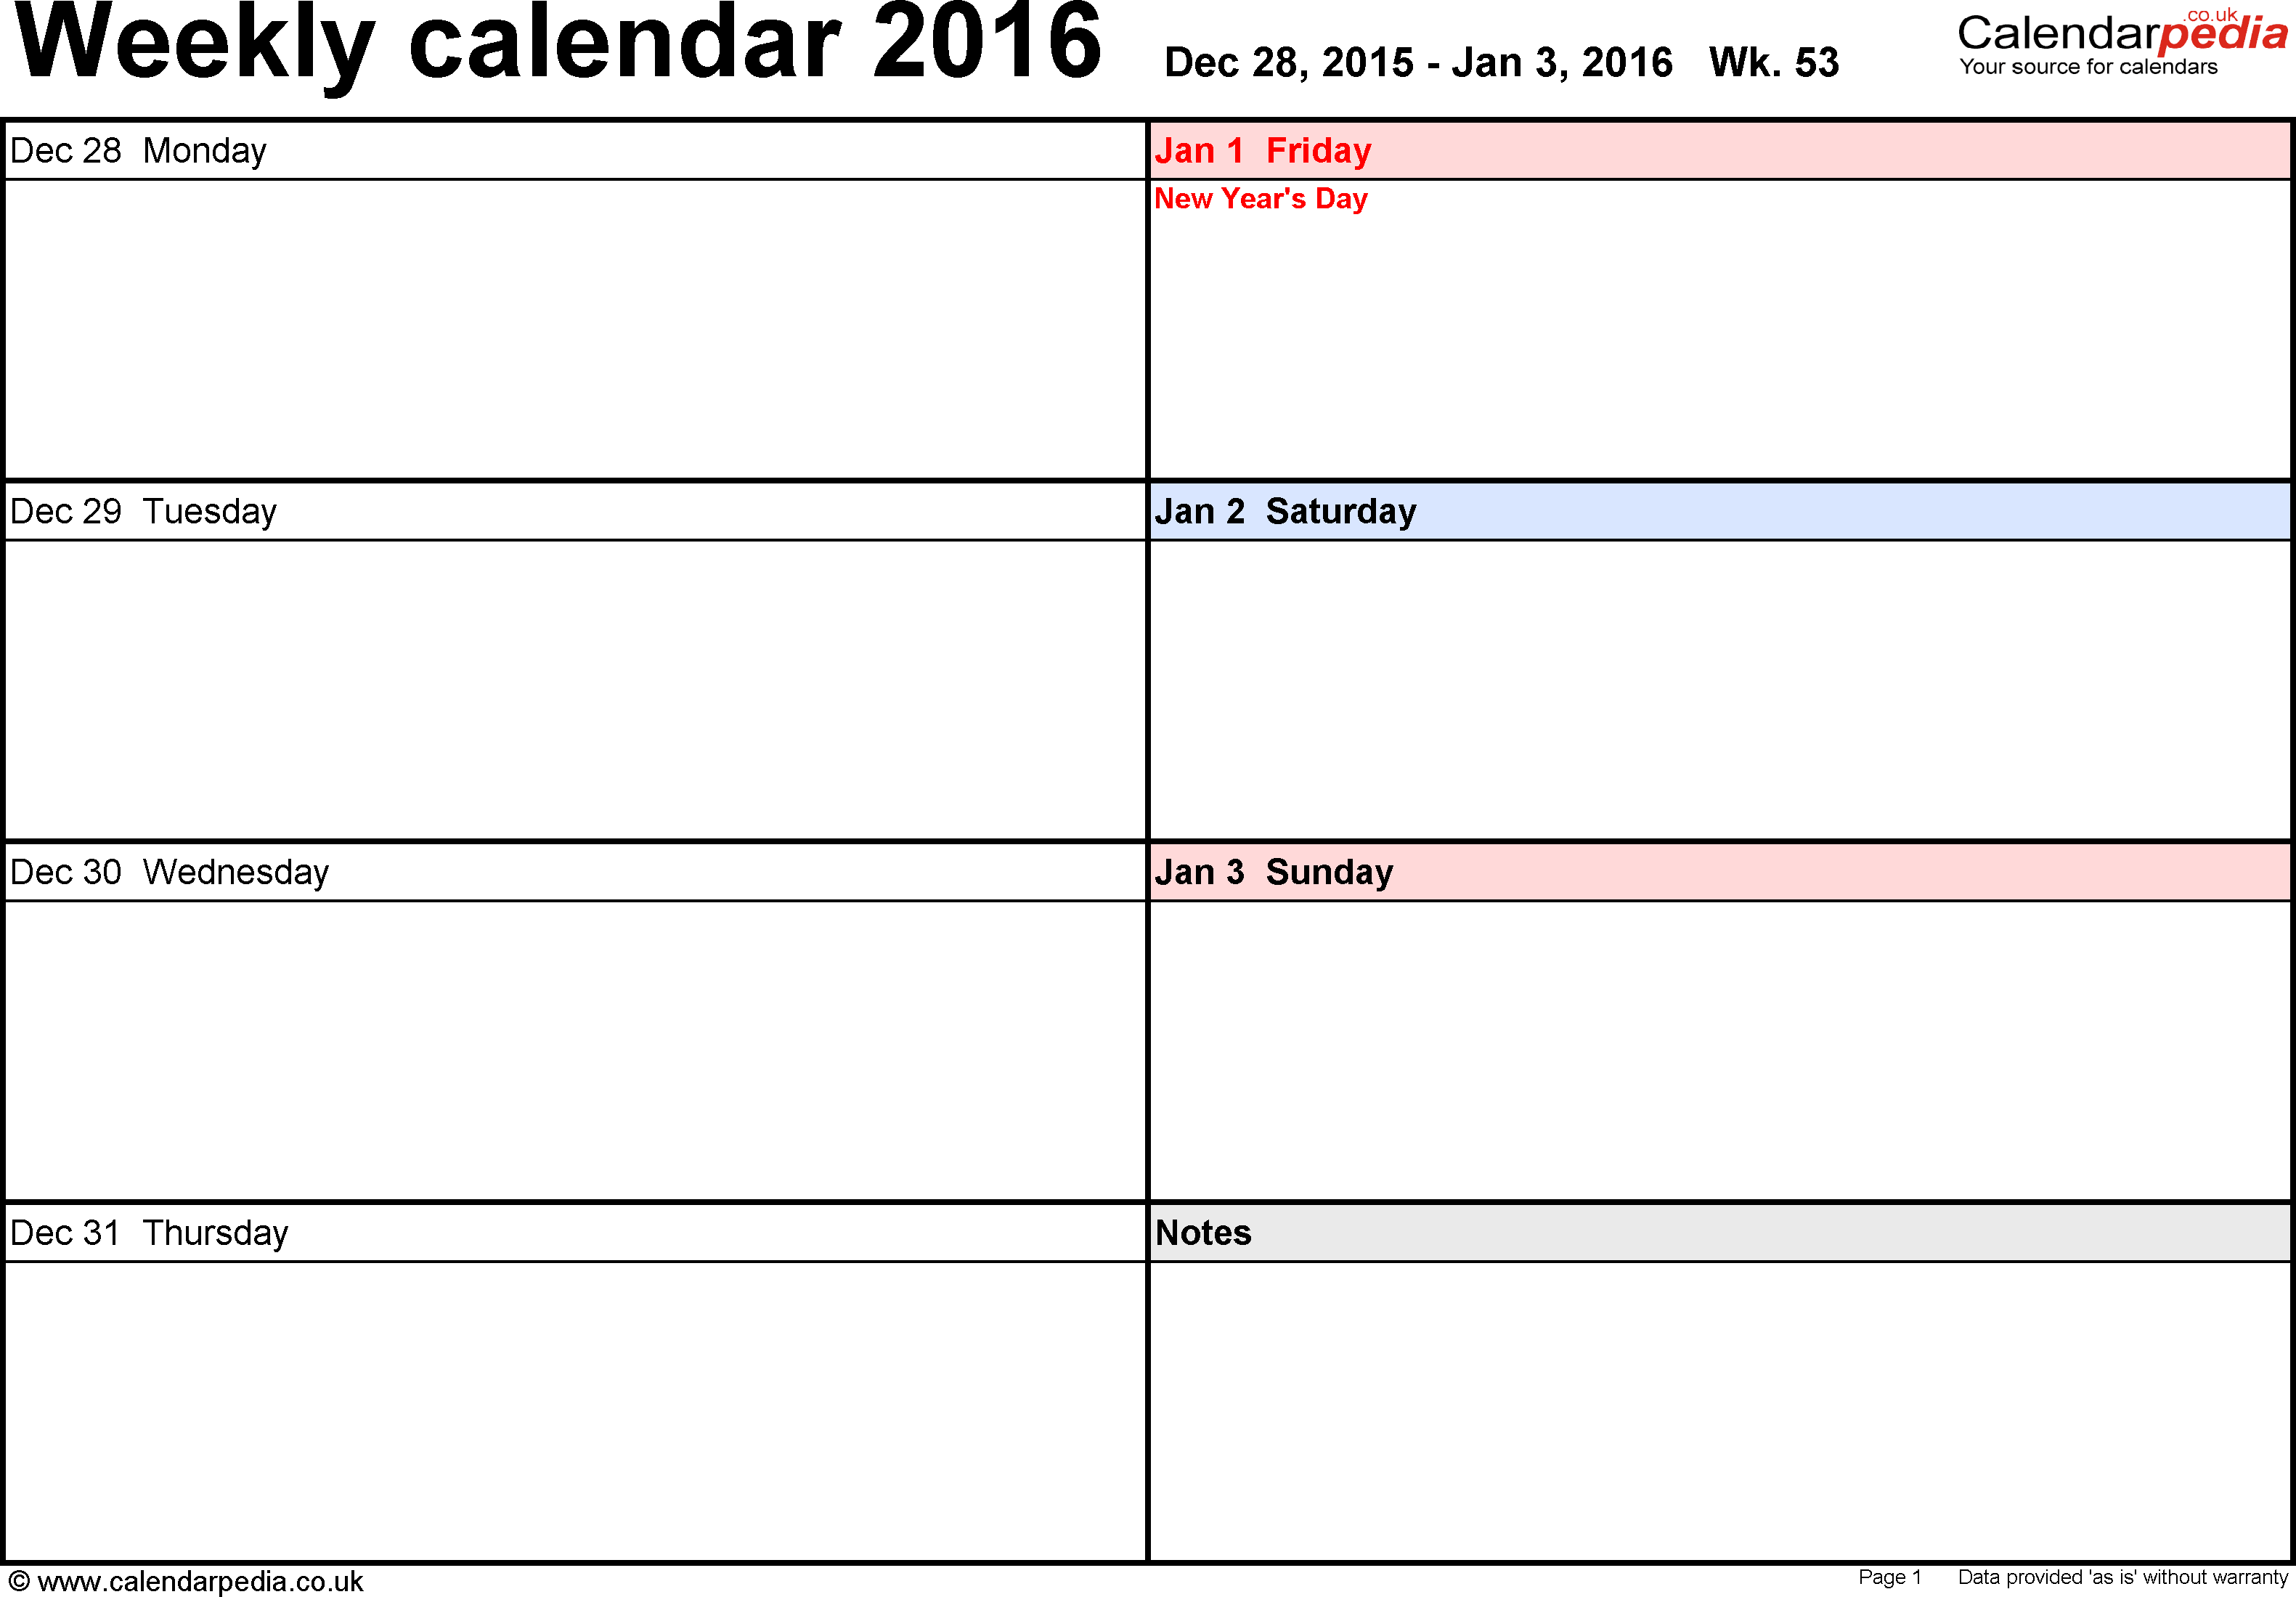 weekly calendar uk printable templates for pdf pdf template 6 weekly calendar 2016 landscape orientation days horizontally 53 pages